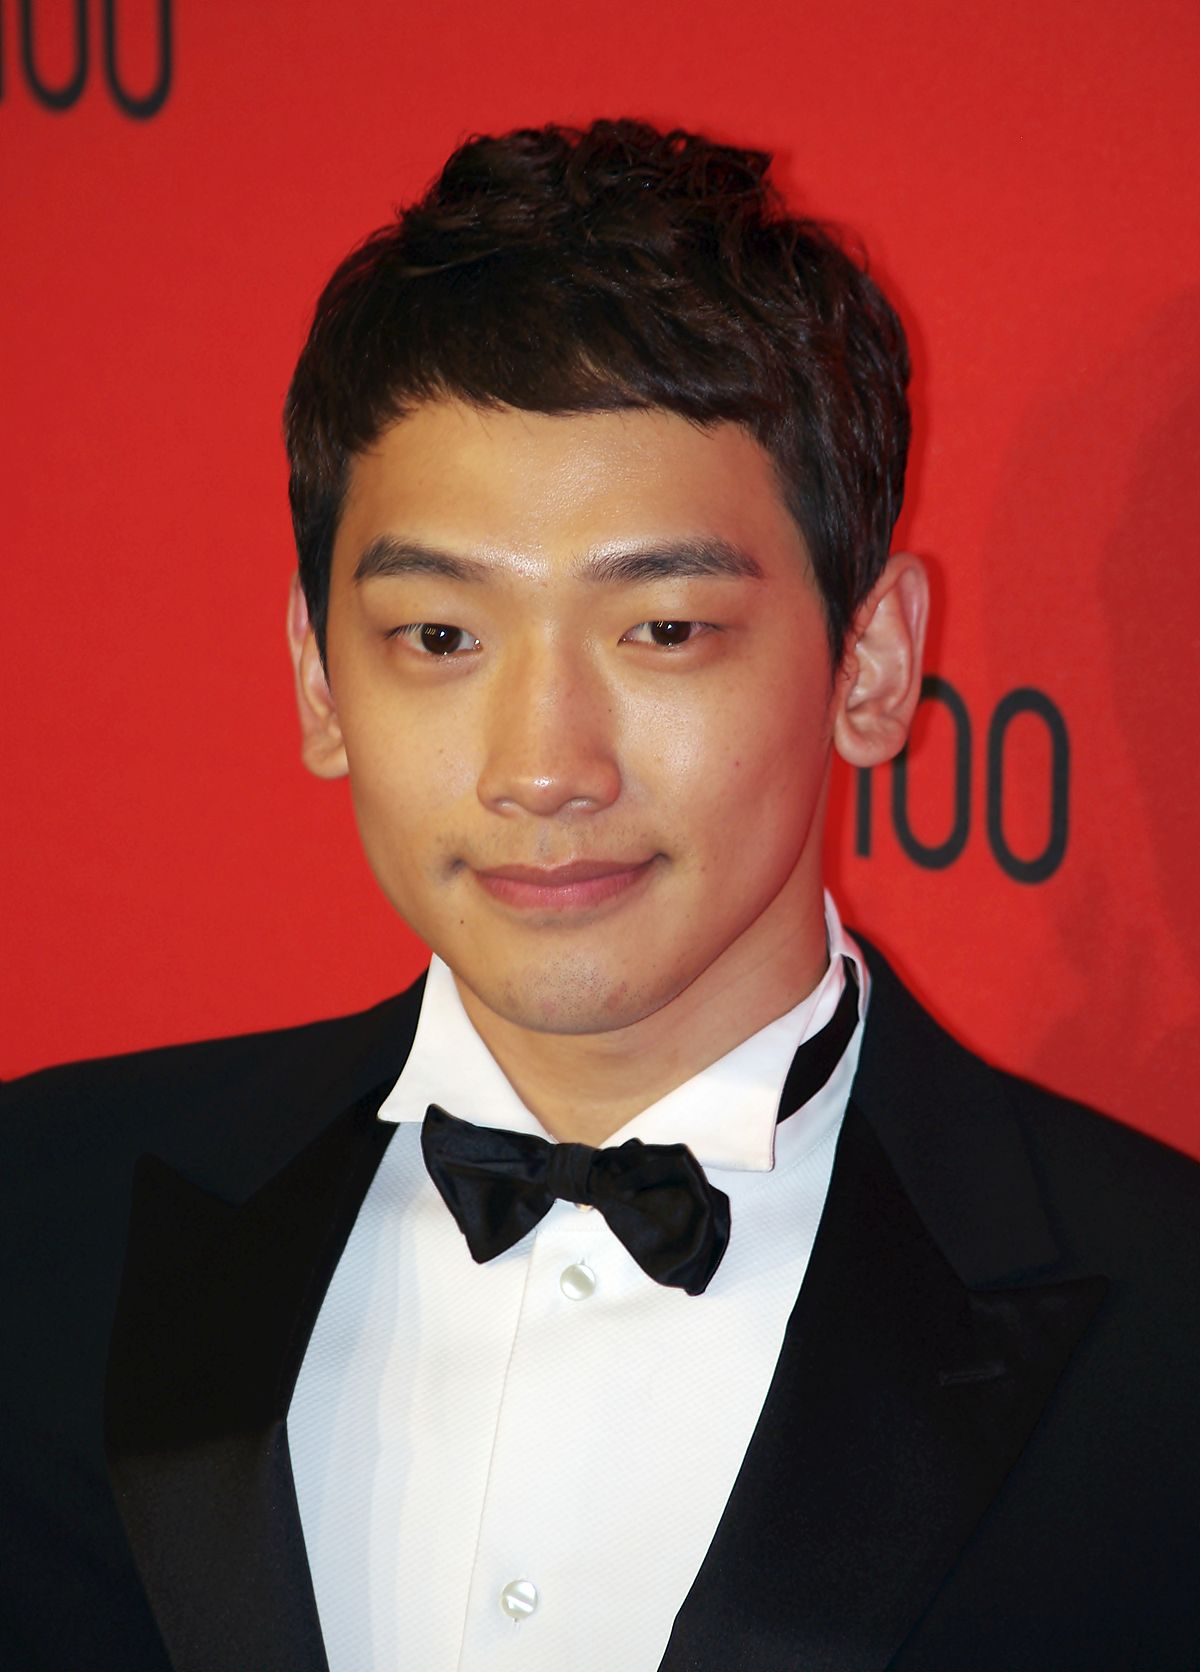 Rain (entertainer) - Wikipedia